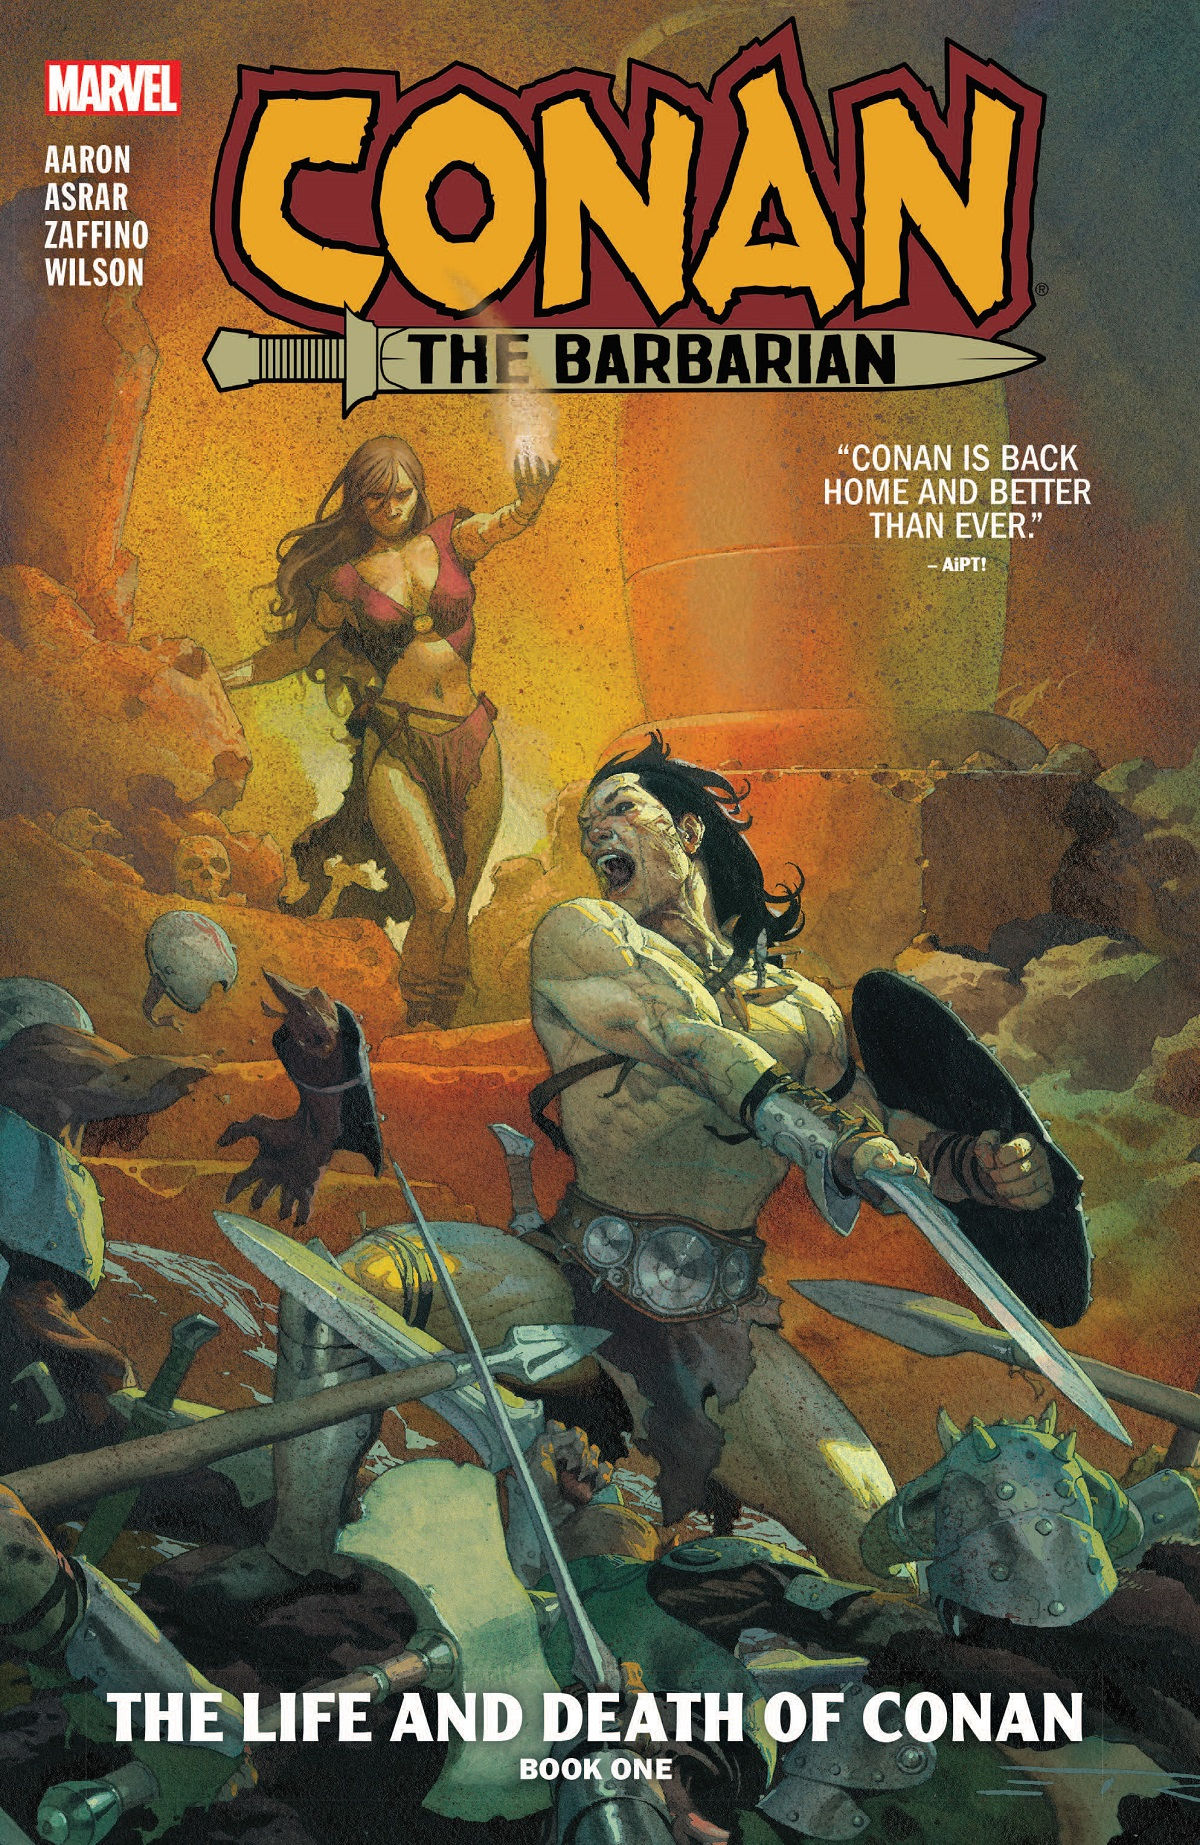 Conan The Barbarian Vol. 1: The Life And Death Of Conan Book One (Trade Paperback)